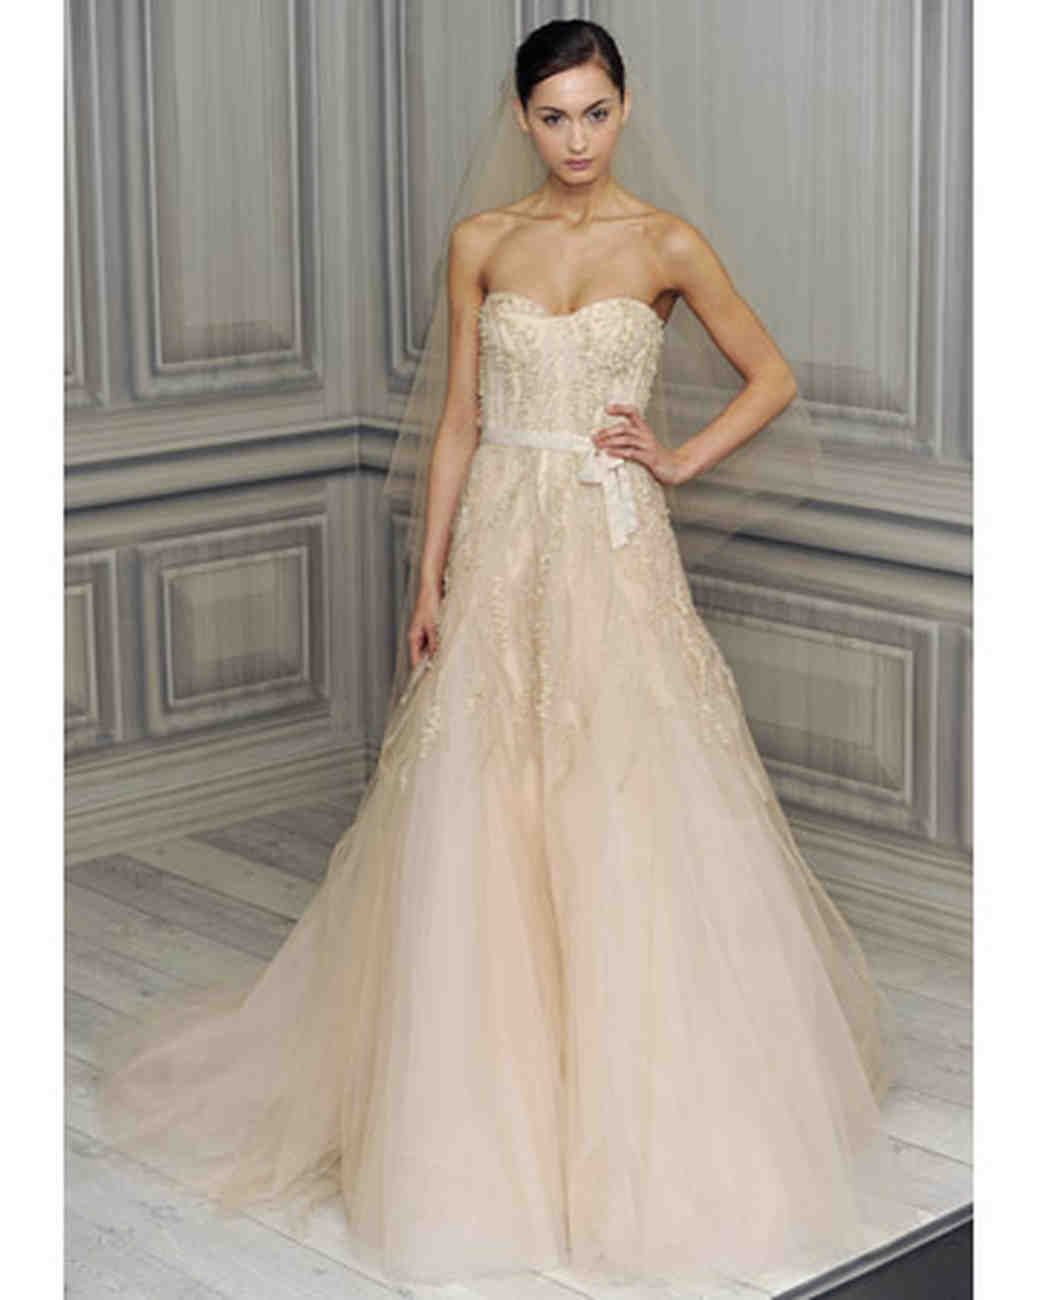 Monique Lhuillier This Blush Colored Tulle Gown